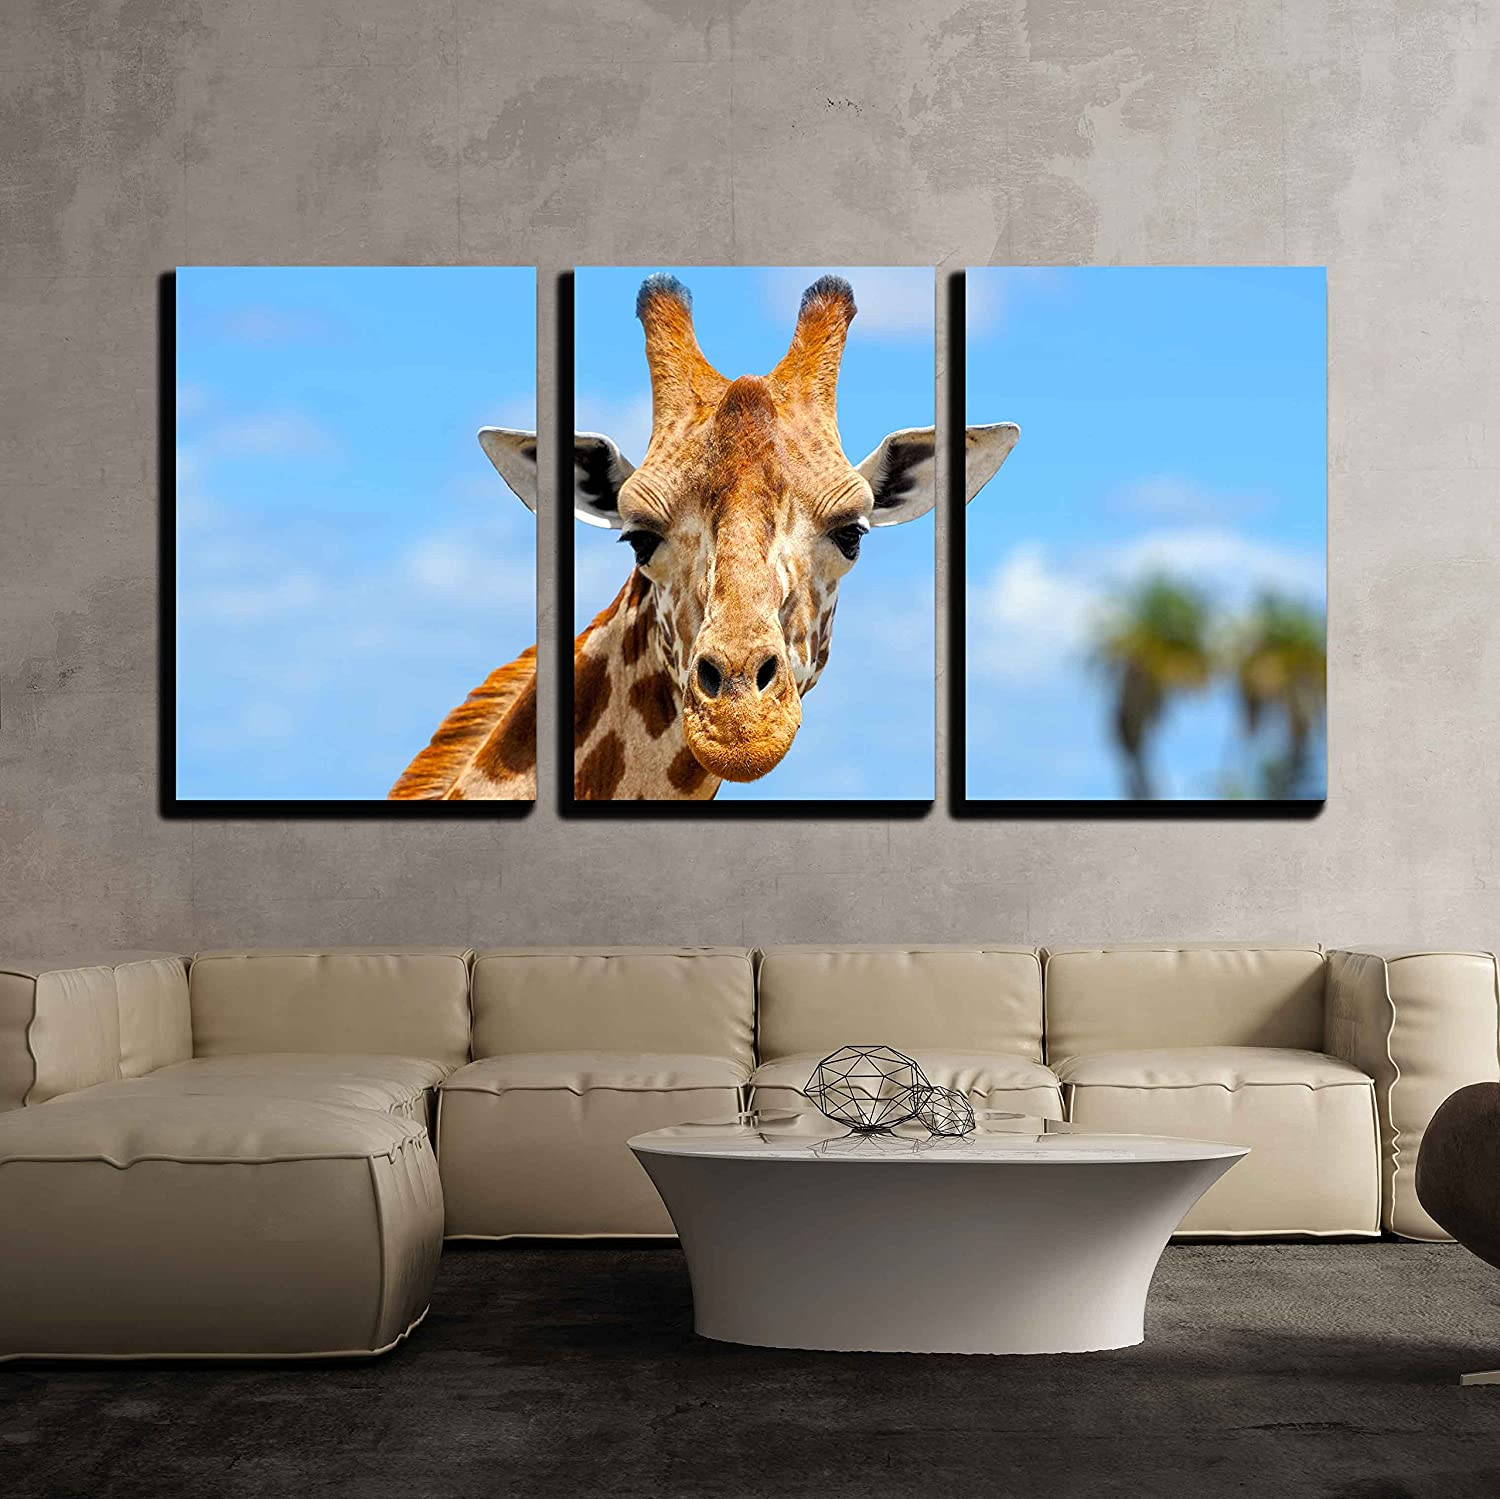 Wall26 3 Piece Canvas Wall Art Giraffe In Front Amboseli National Park Kenya Modern Home Decor Stretched And Framed Ready To Hang 16 X24 X3